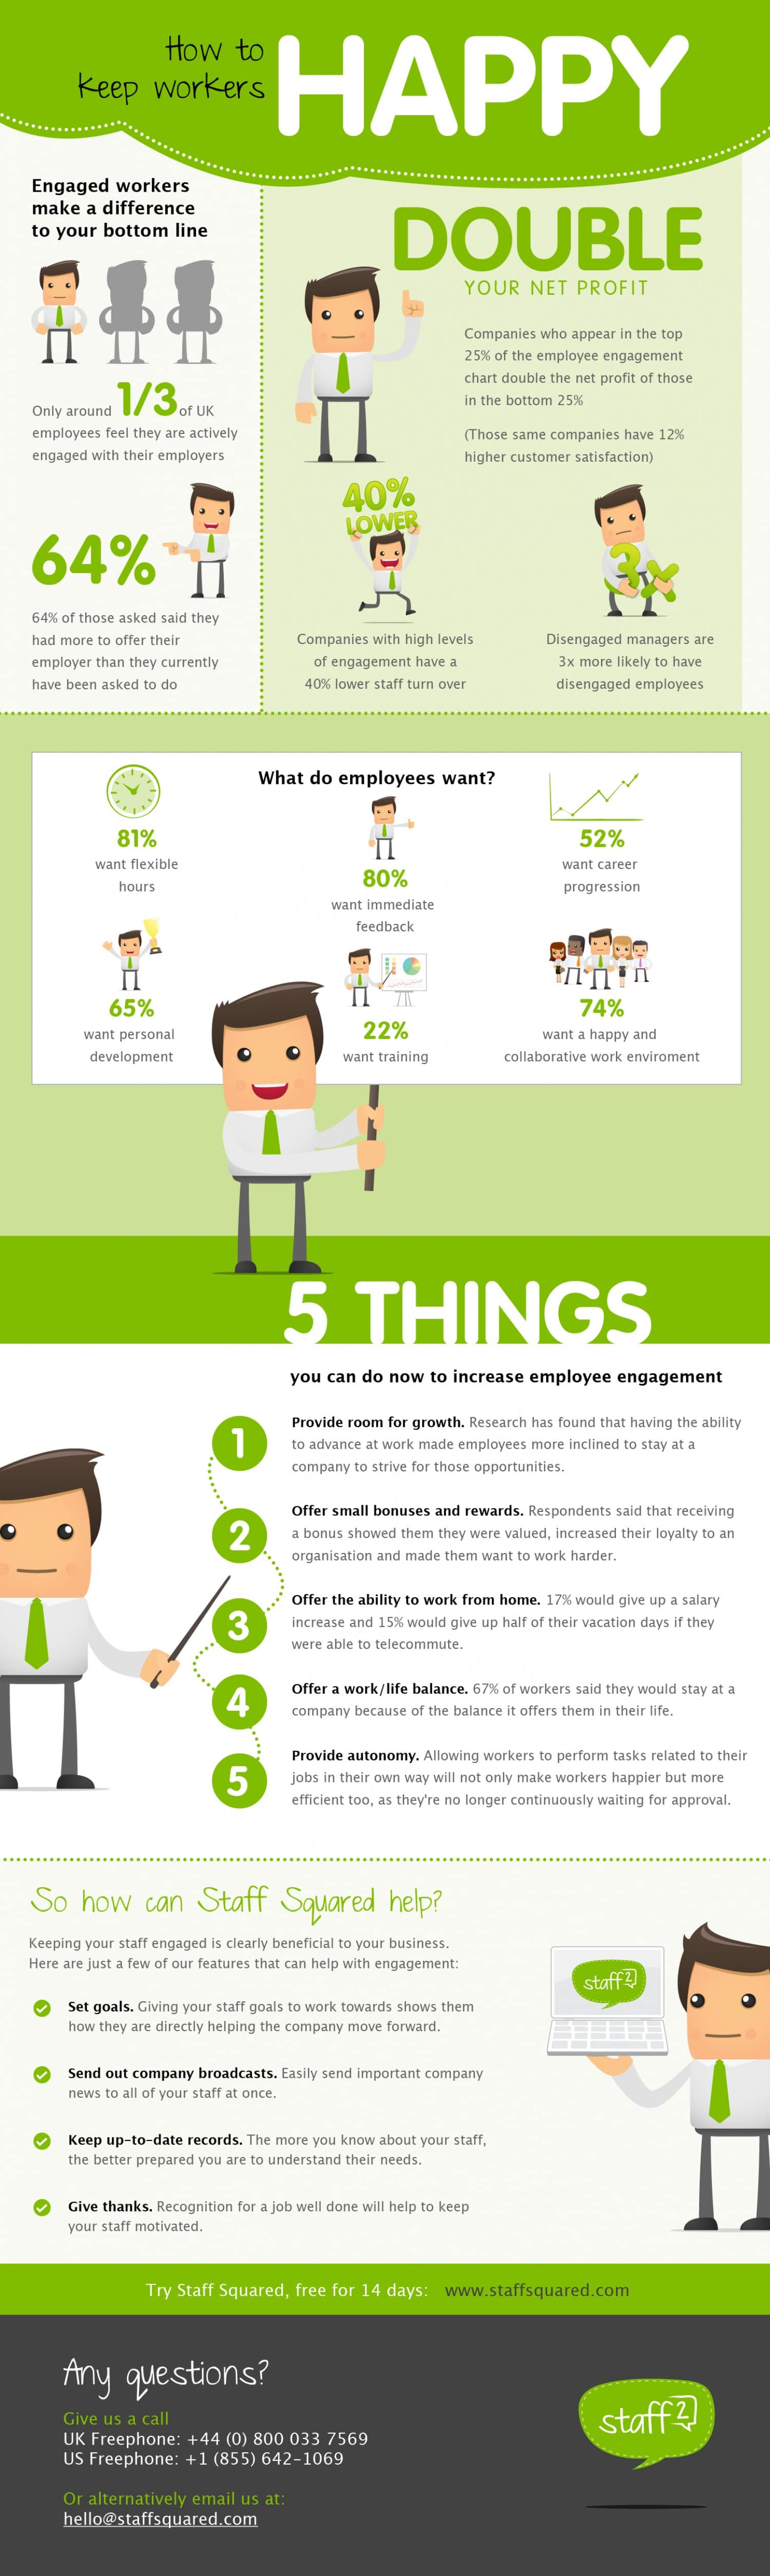 Why keeping your employees happy and engaged positively impacts your business